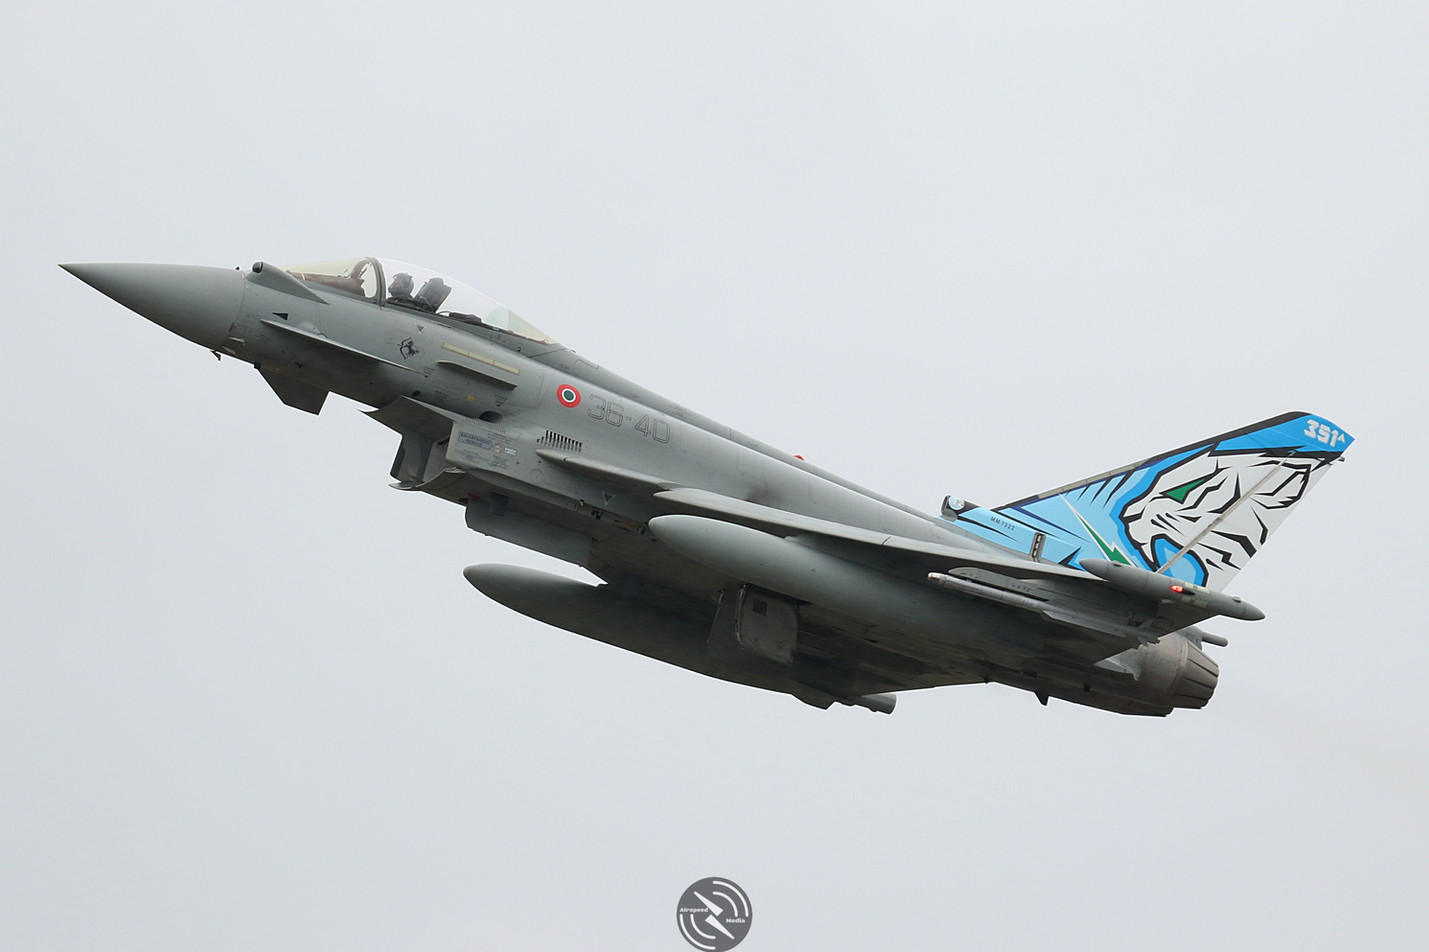 AMI EF2000 Typhoon NATO Tiger Meet 2019